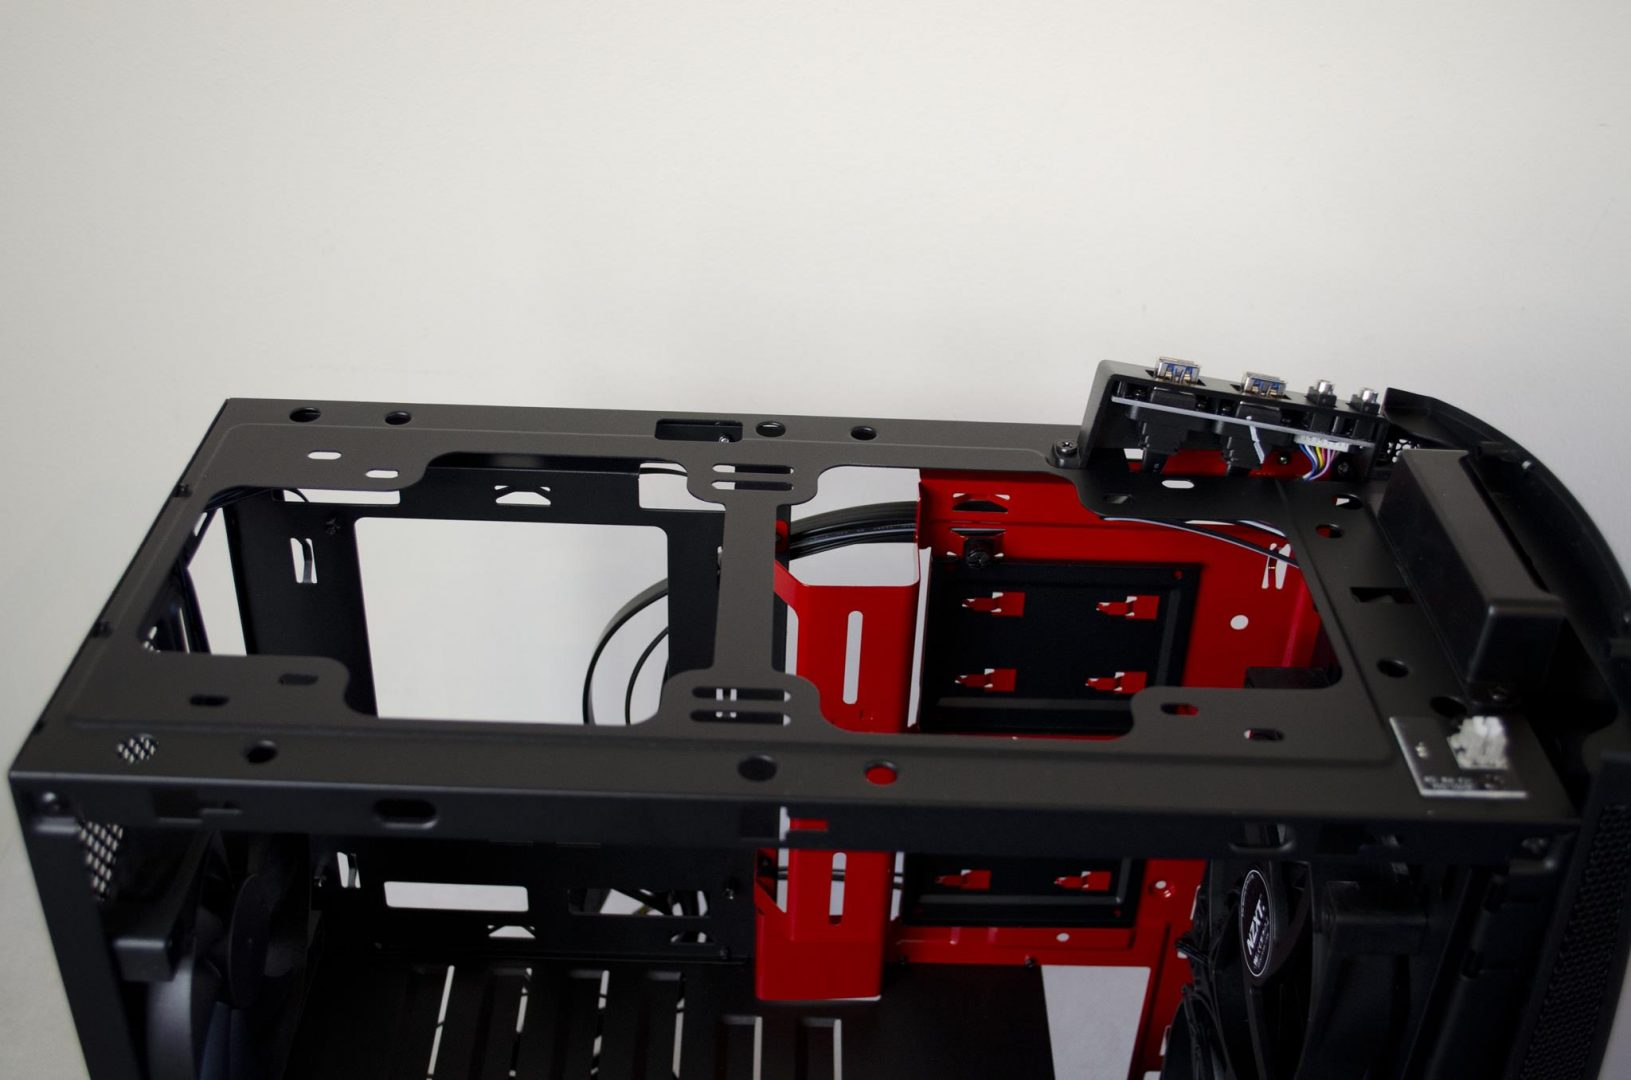 nzxt manta pc case review_14